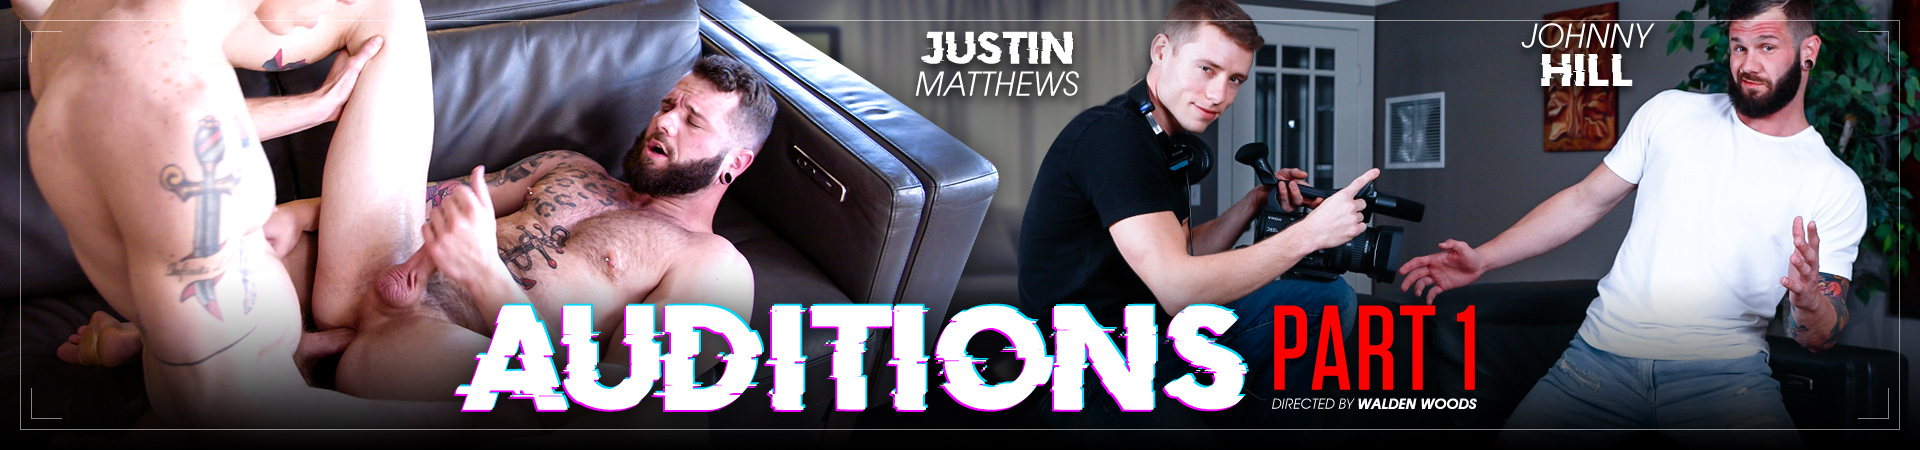 Next Door Studios Auditions - Part 1 Featuring Johnny Hill and Justin Matthews